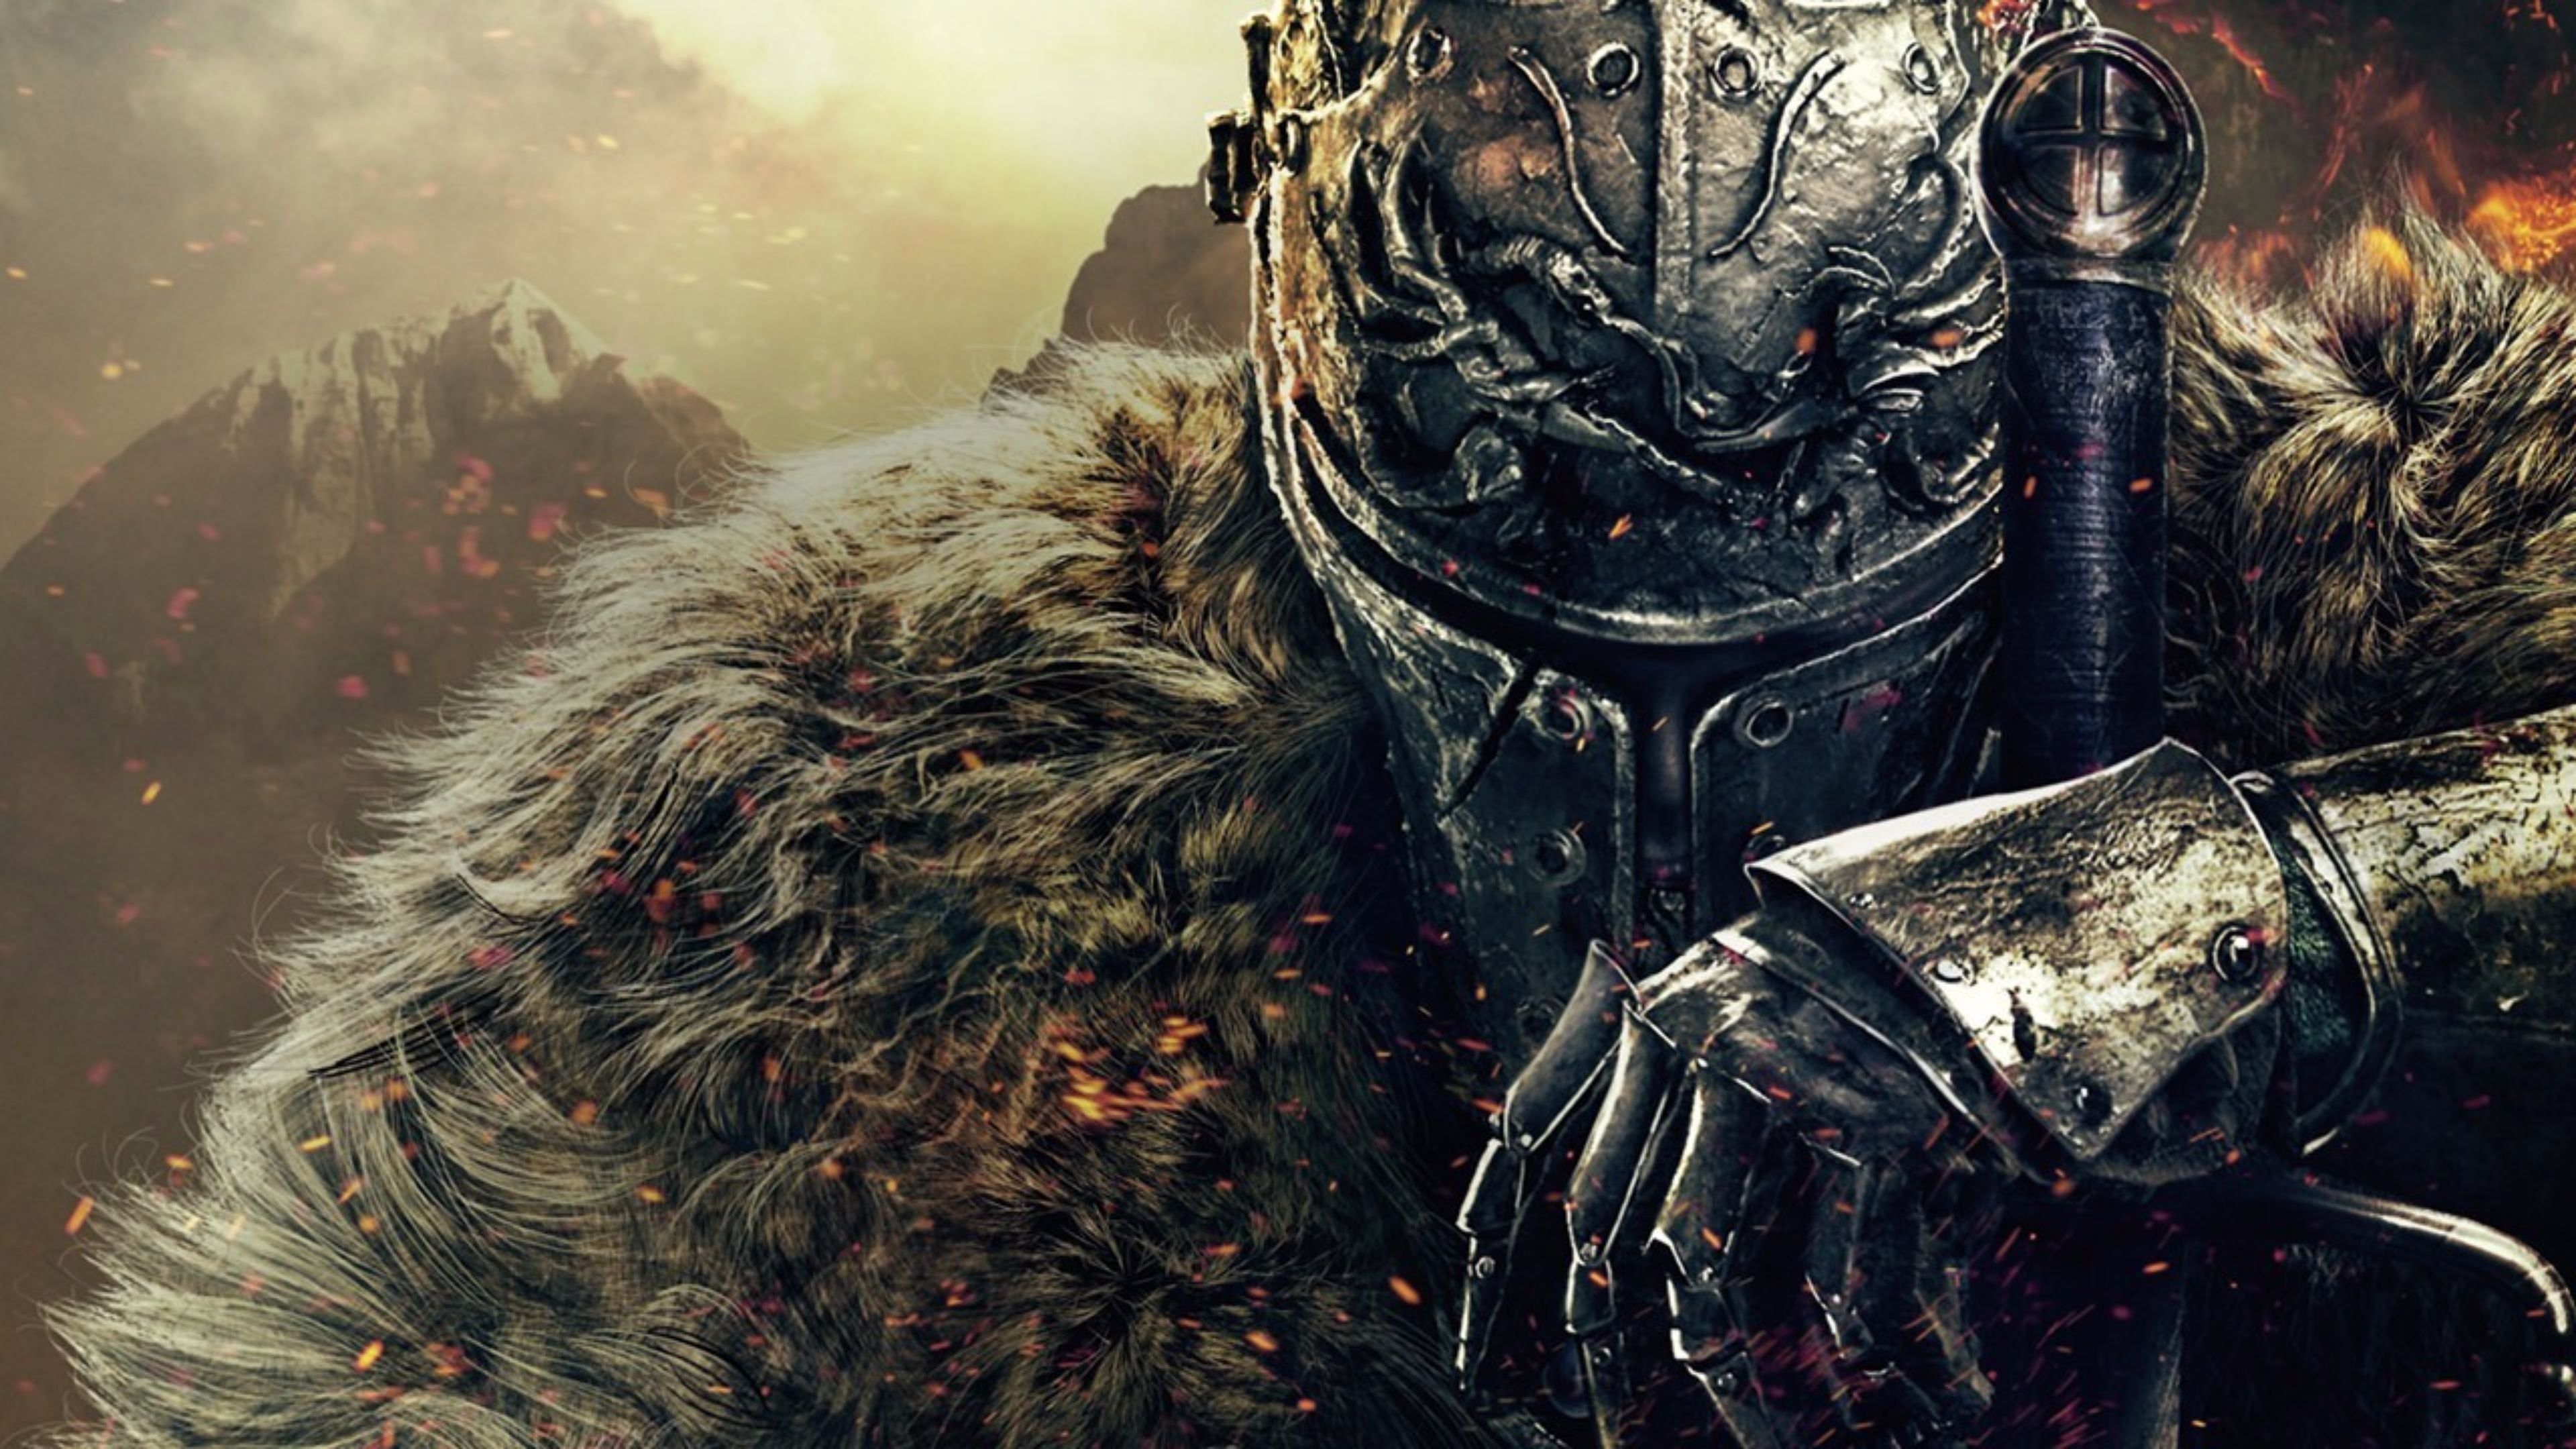 3840x2160 Download Dark Souls III 4K Wallpaper Free 4K Wallpaper